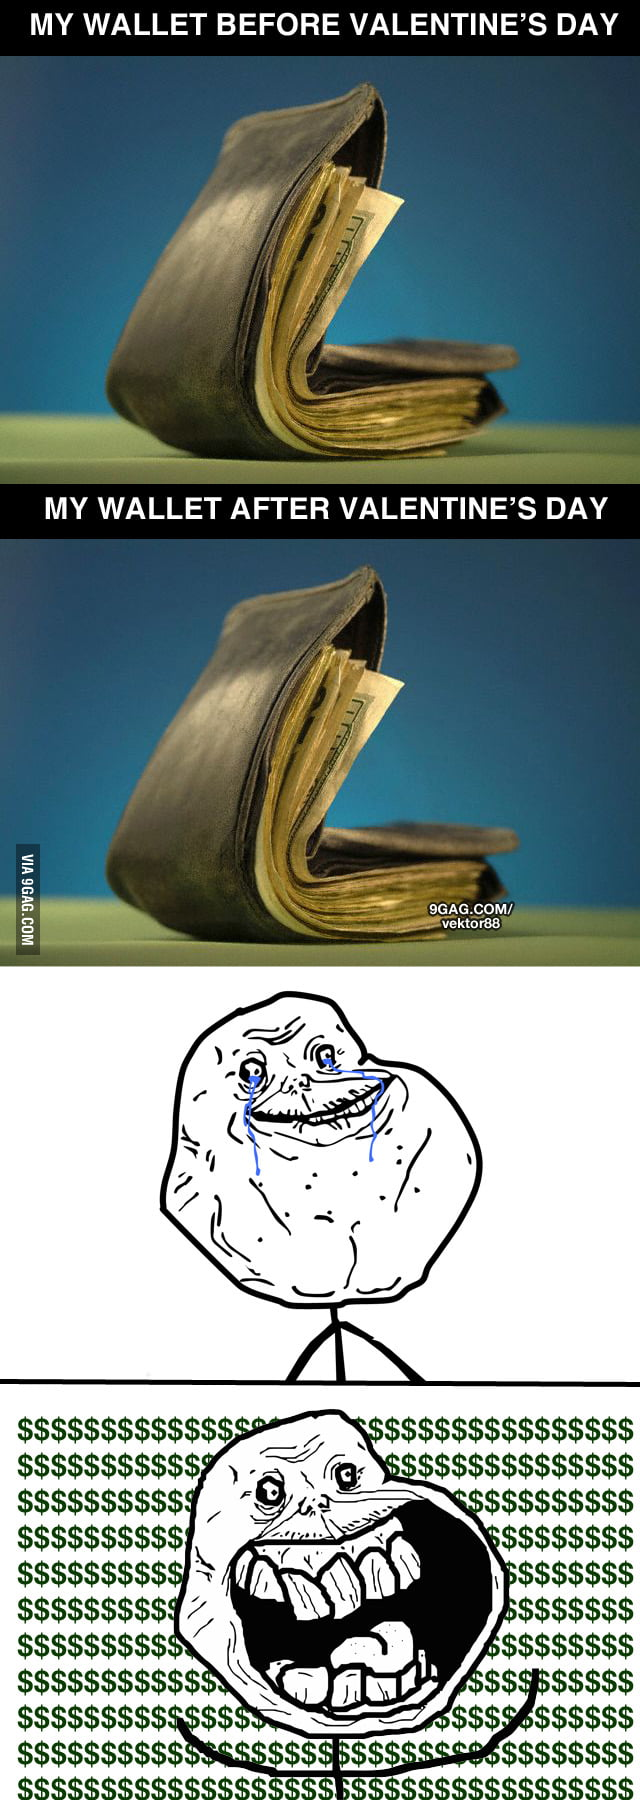 My wallet before/after Valentine's Day